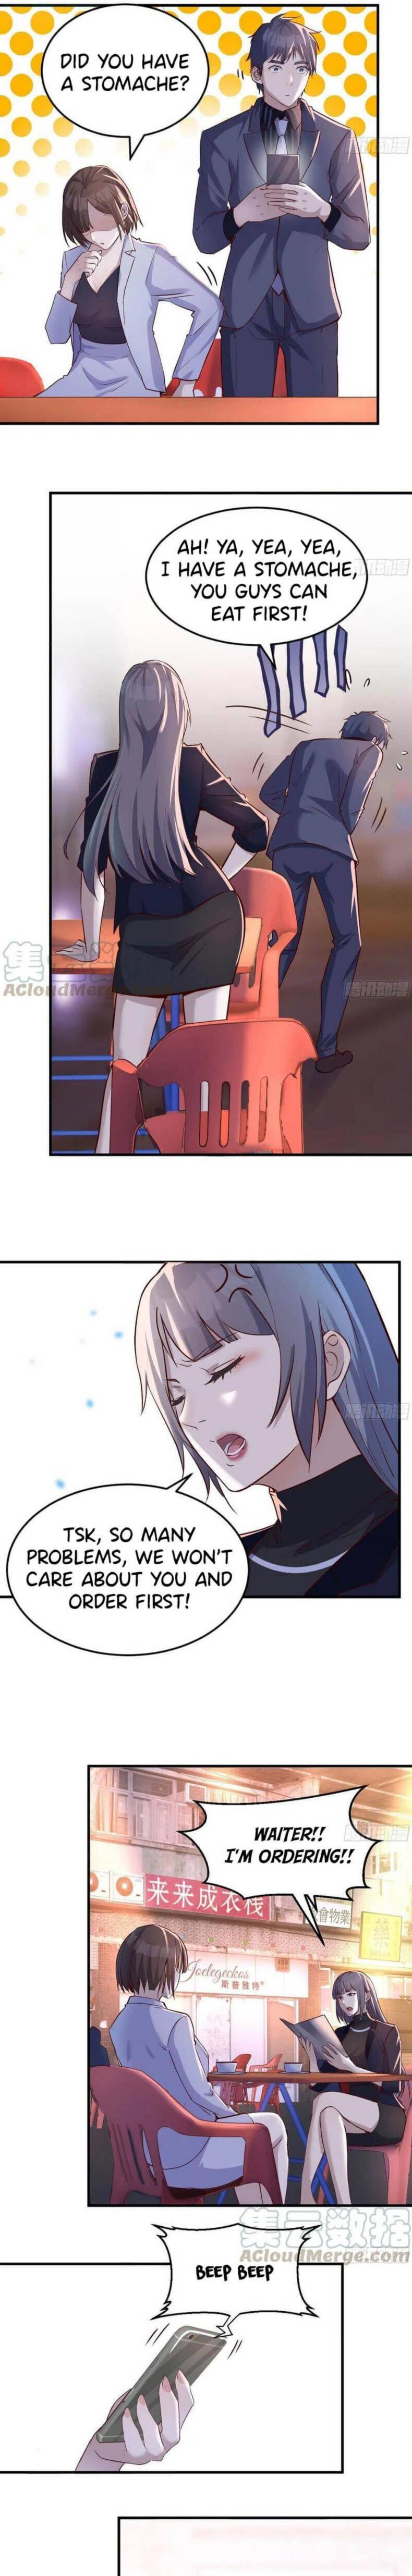 I have Twin Girlfriends - chapter 71 - #2